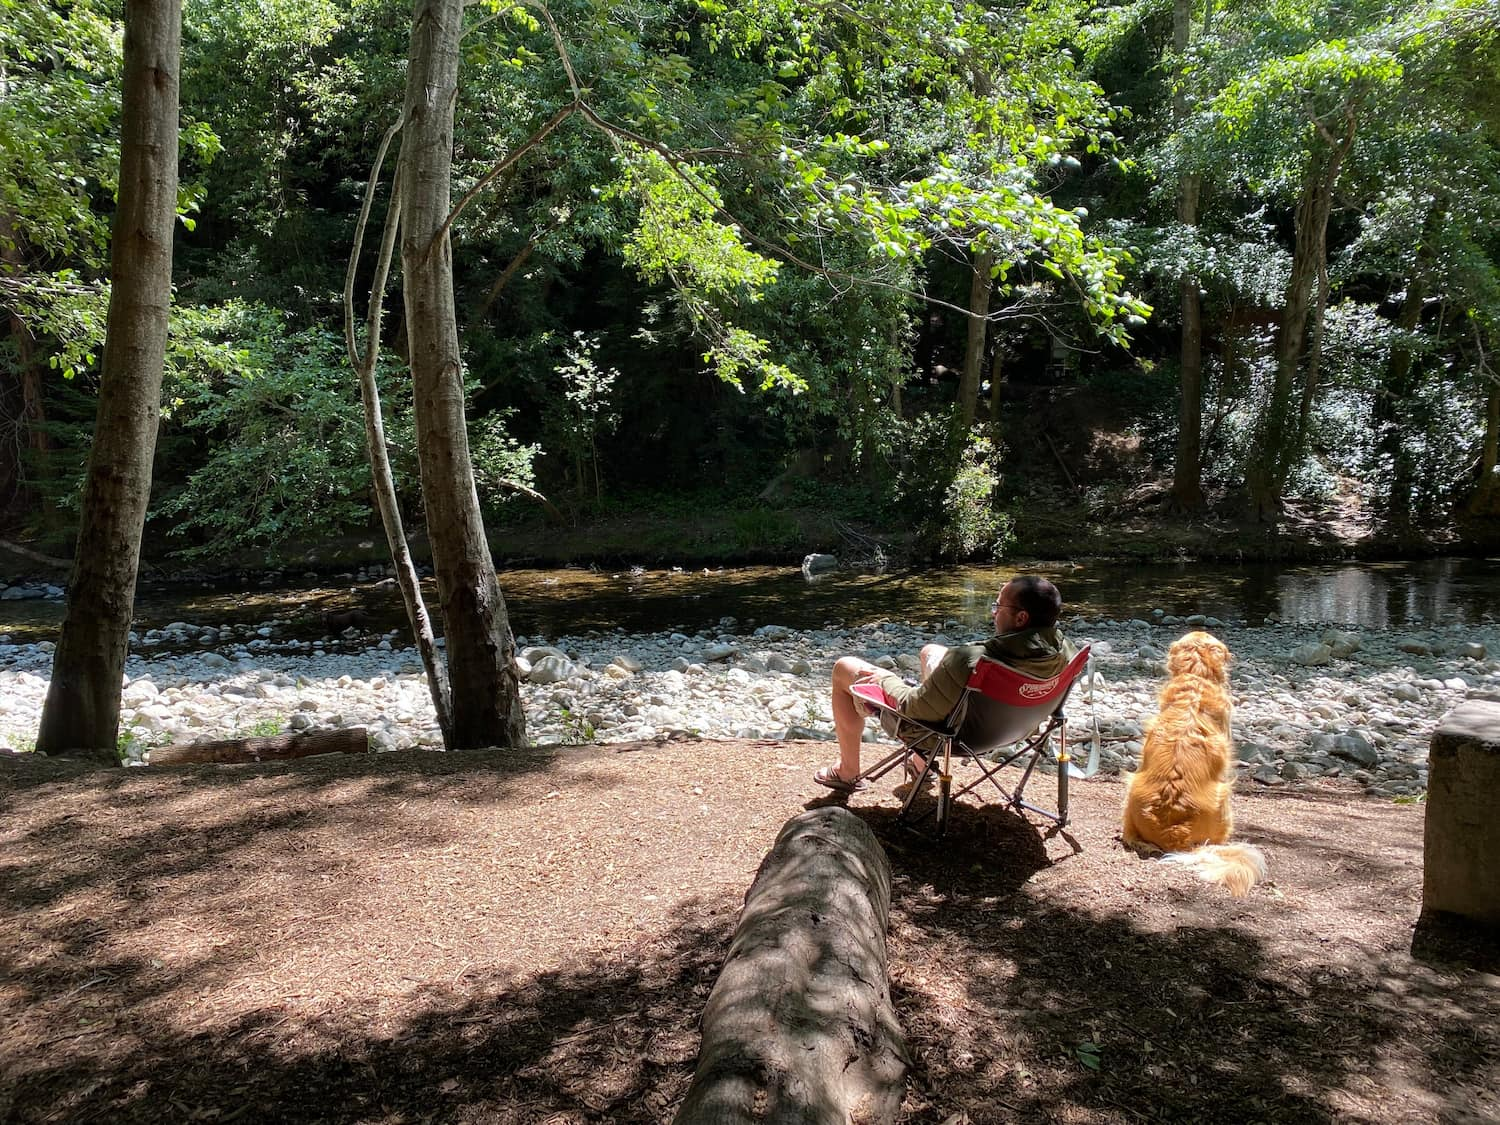 man and dog sitting by a river